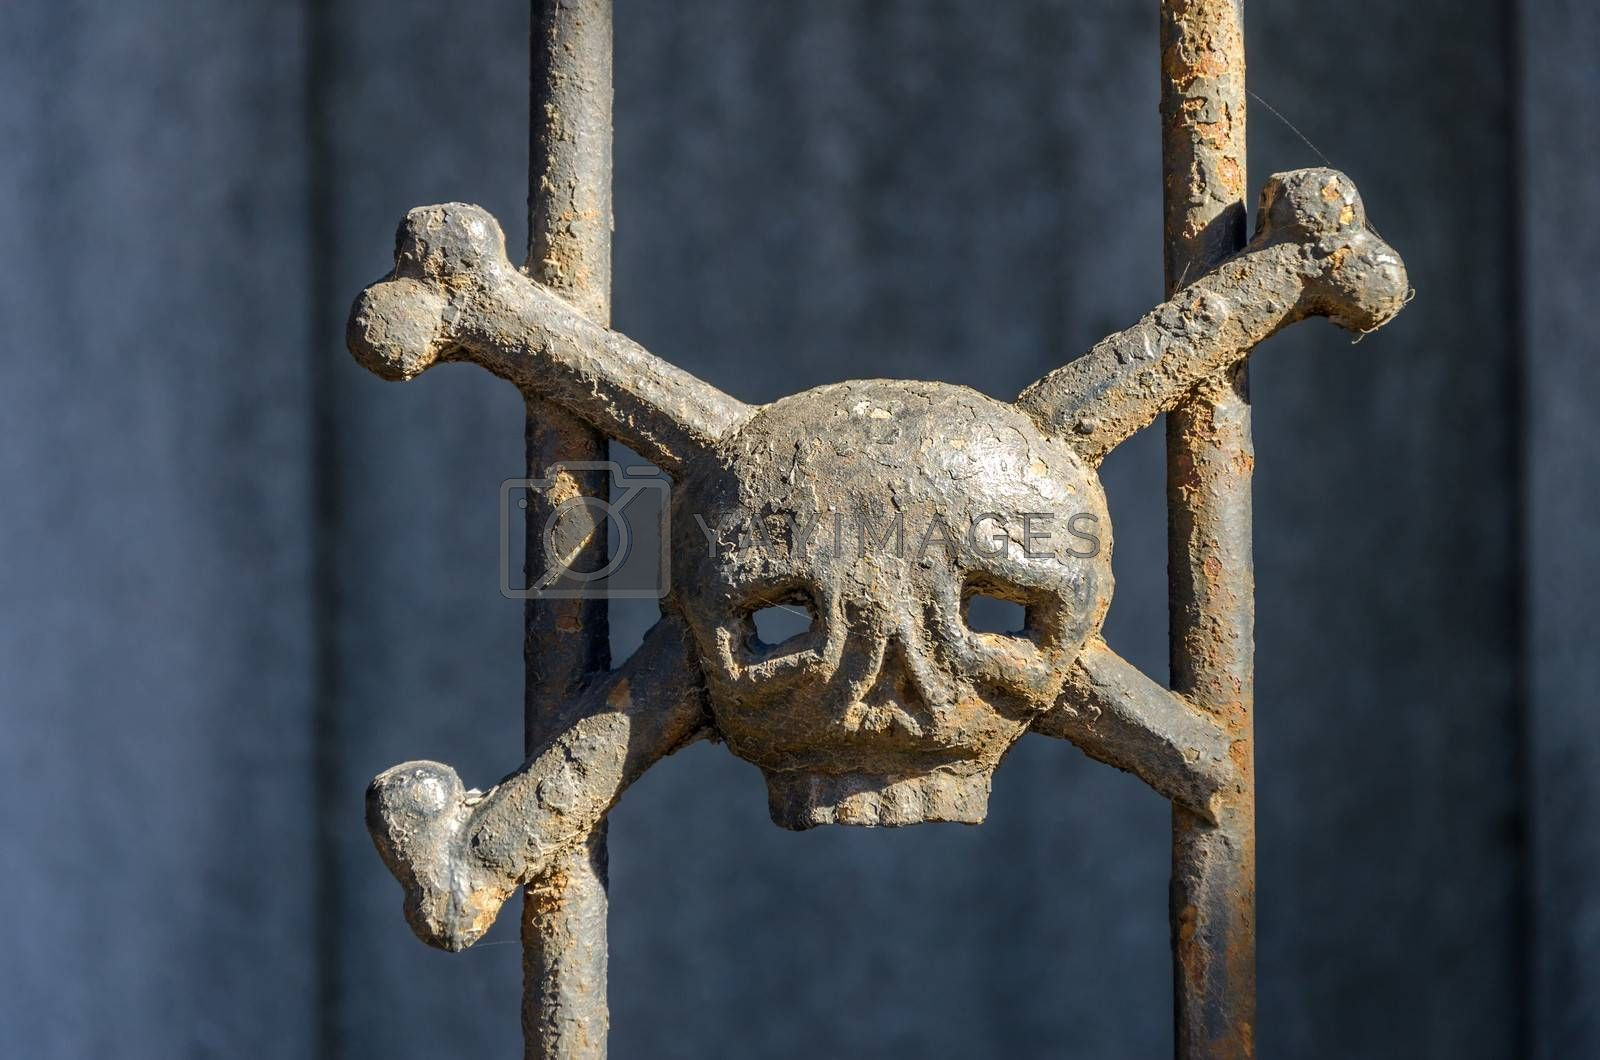 Iron skull and crossbones decorating a tomb in Recoleta cemetery in Buenos Aires, Argentina